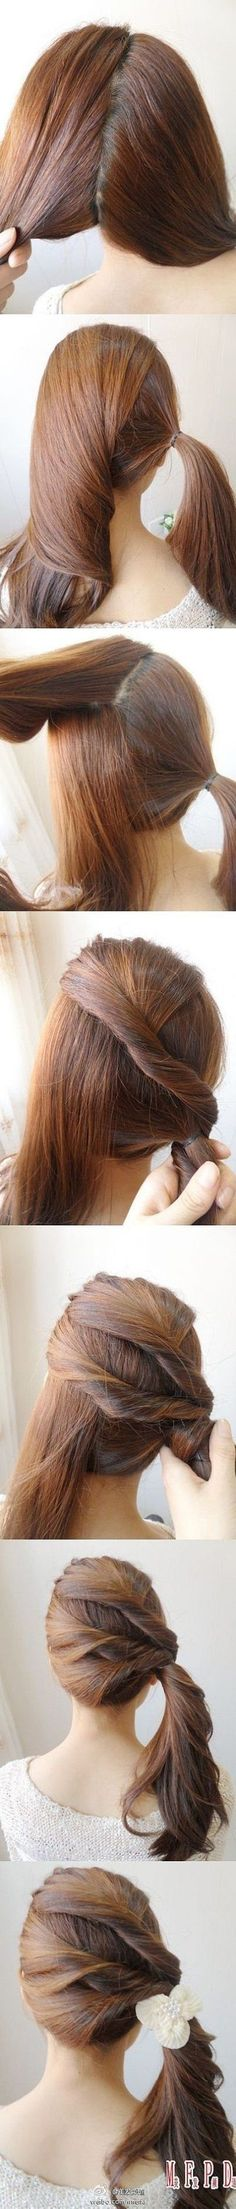 Hair tutorial for side ponytail Pretty Hairstyles, Girl Hairstyles, Wedding Hairstyles, Easy Hairstyles, Wedding Updo, Girls Hairdos, Casual Hairstyles, Hair Dos, My Hair